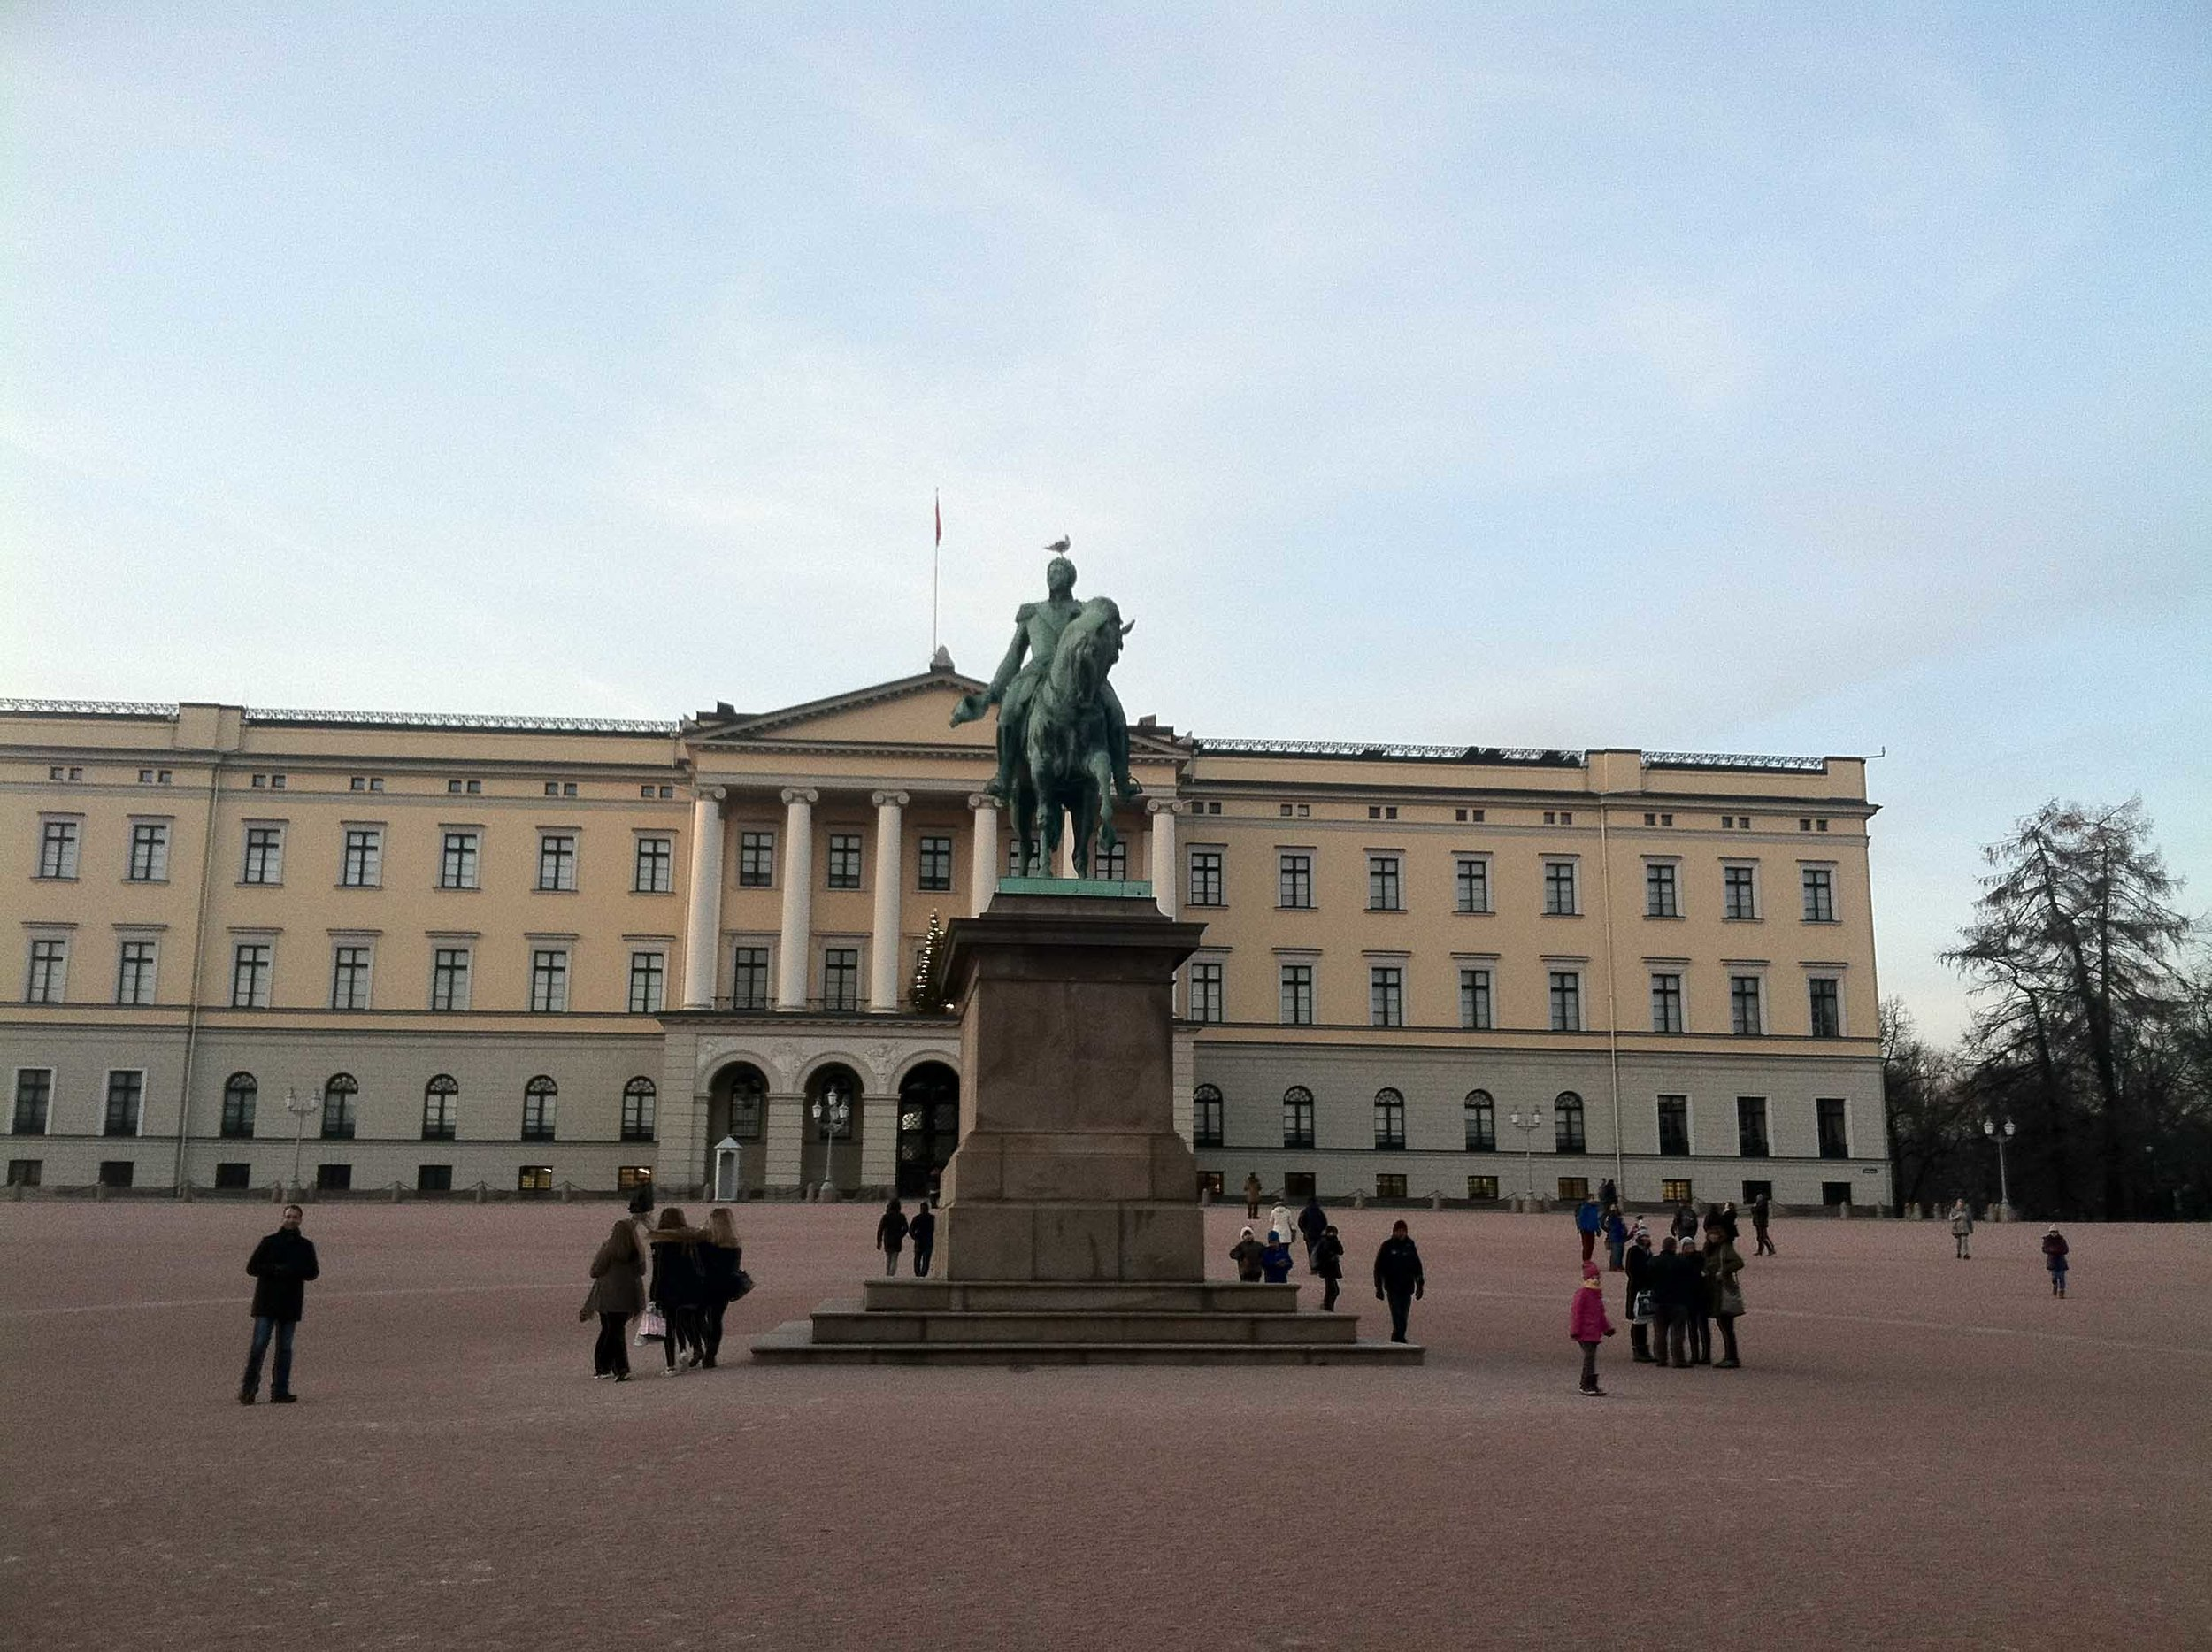 Captain Julian Kell and the ACHA D3 Select Team took in the sights in Oslow, including the Royal Palace, which was built in the early 19th century and is the official residence of the present Norwegian monarch.